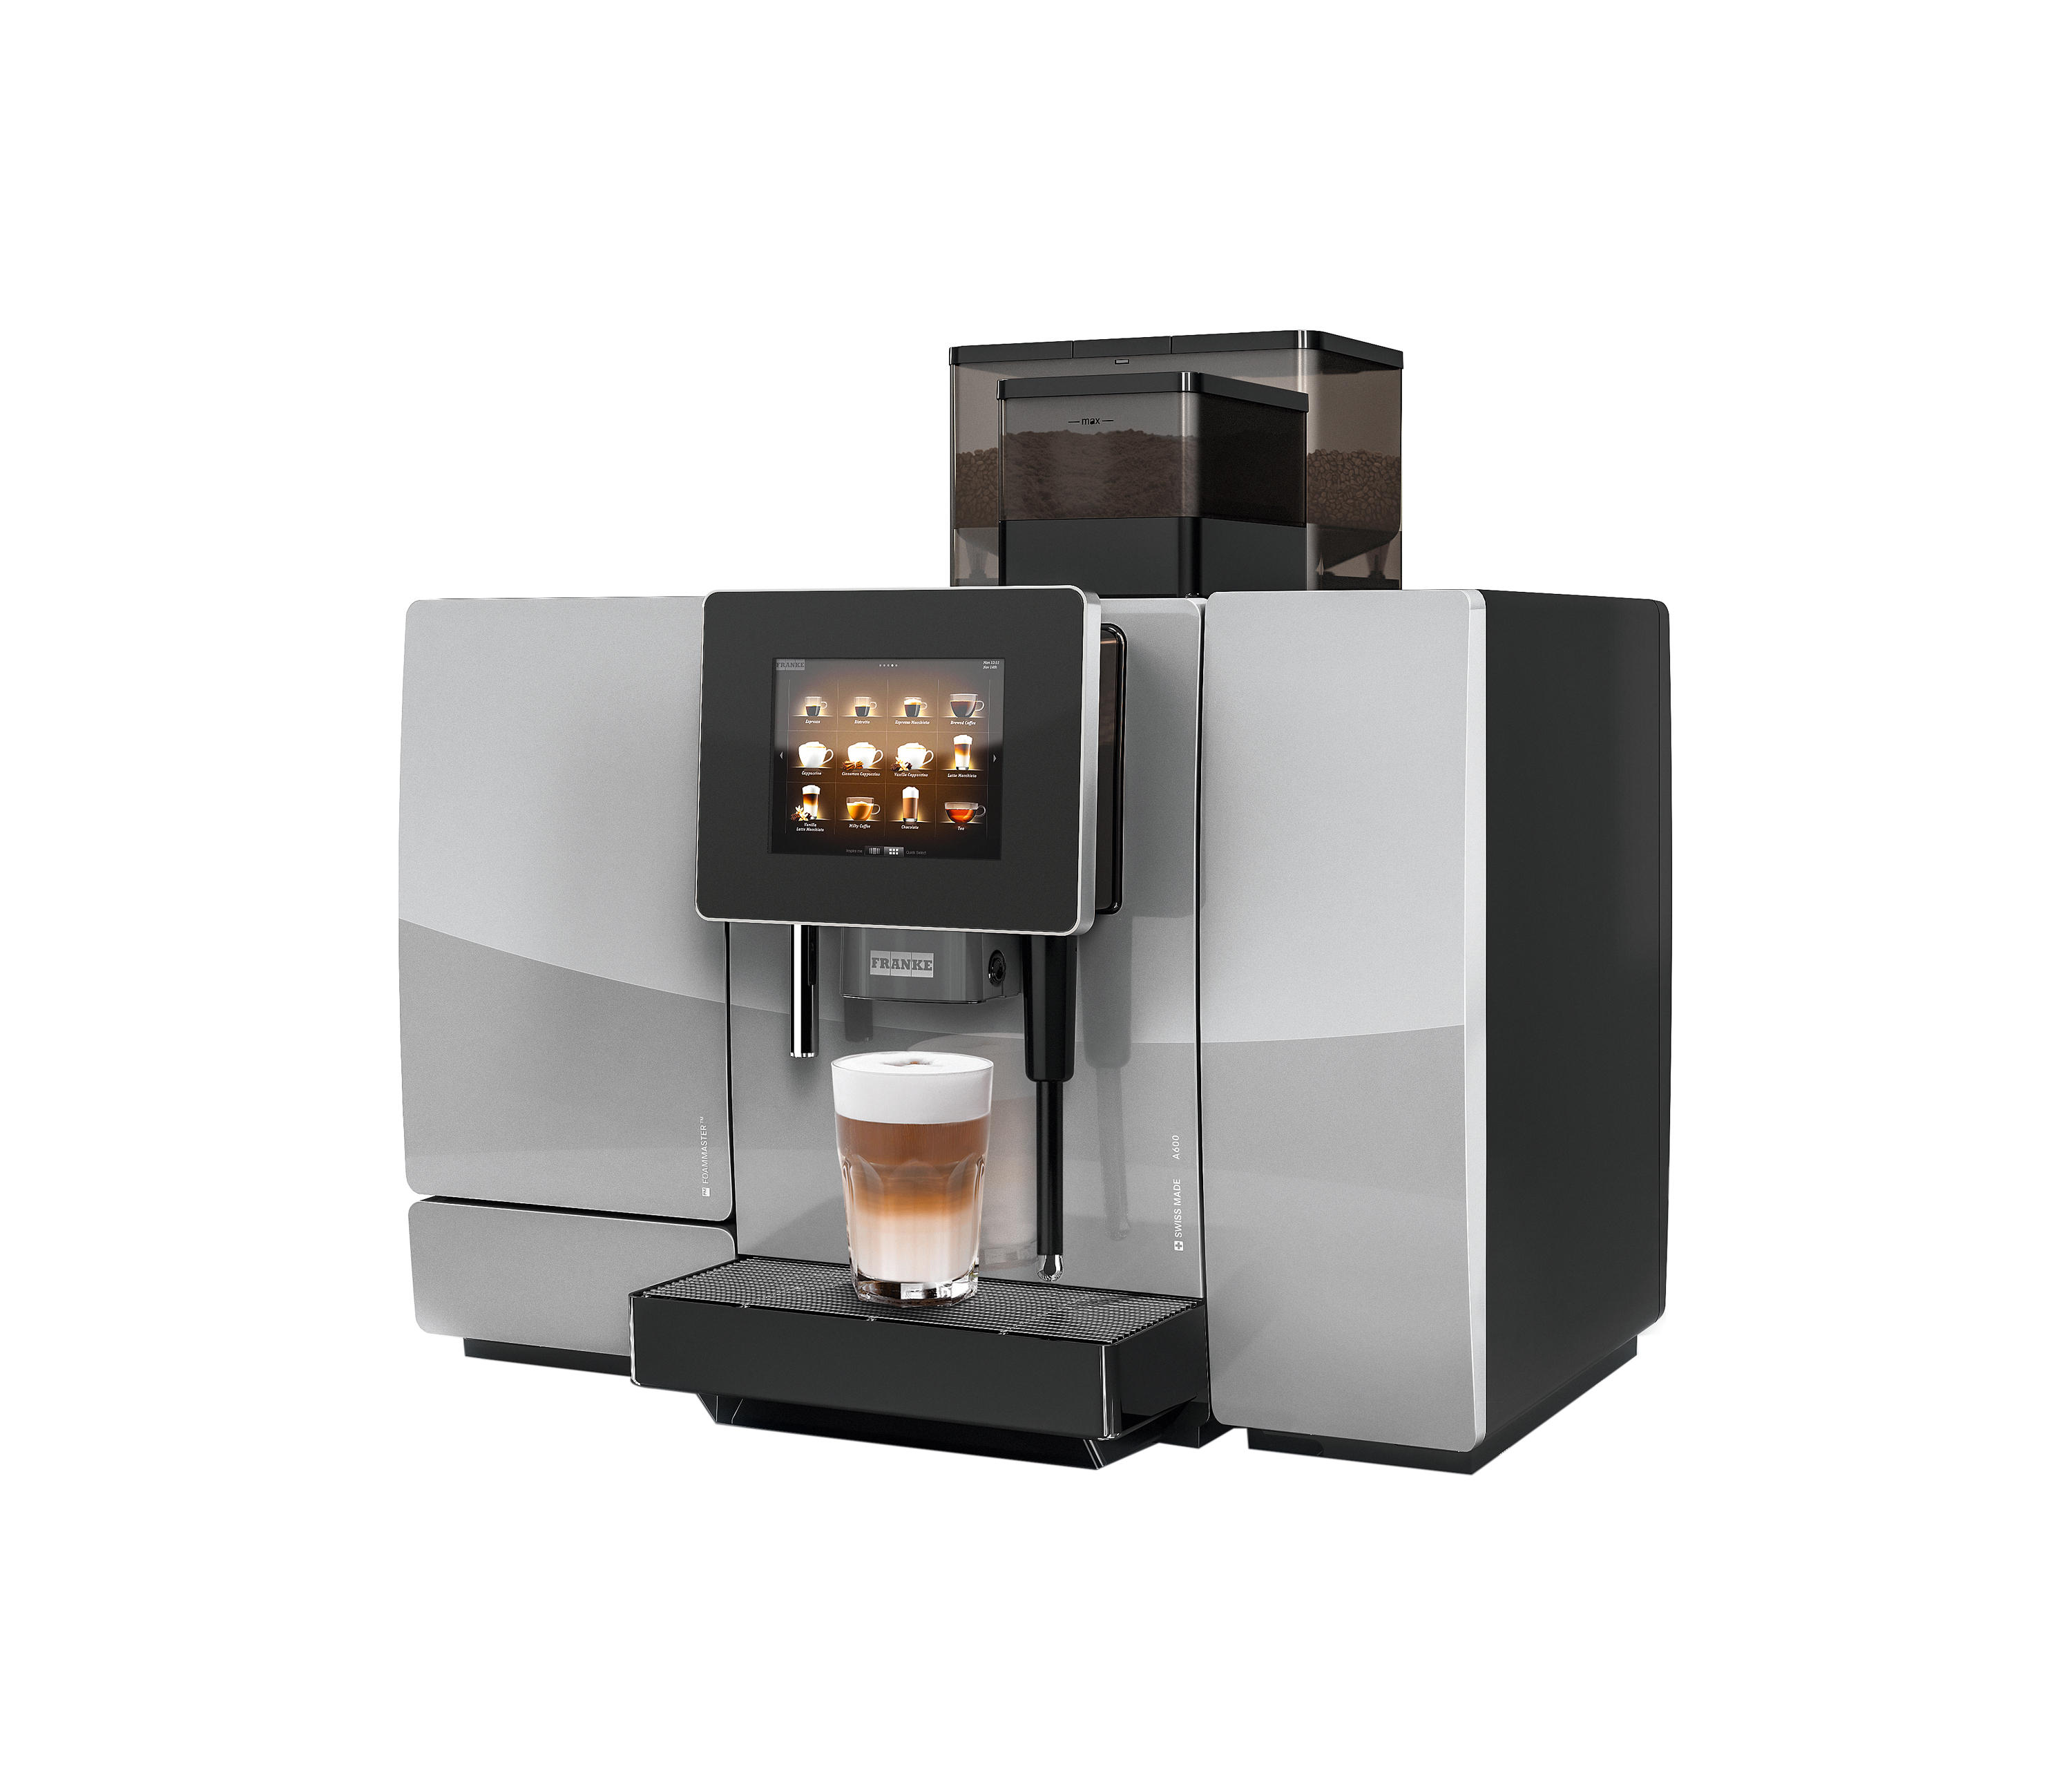 a600 coffee machines from franke kaffeemaschinen ag architonic. Black Bedroom Furniture Sets. Home Design Ideas